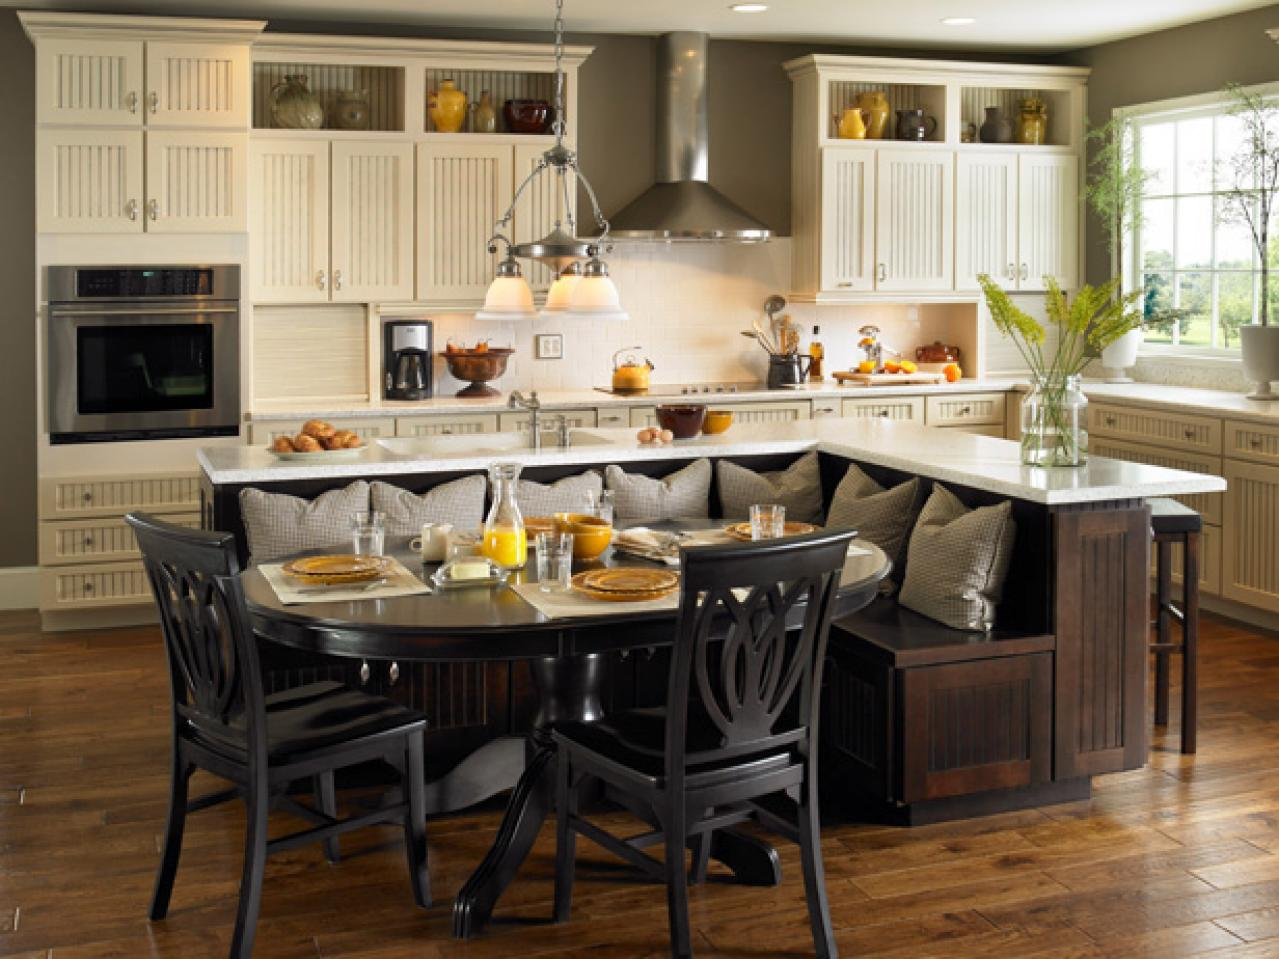 Complete Traditional Kitchen with Breakfast Nook and Oak Kitchen Islands with Seating on Hardwood Flooring